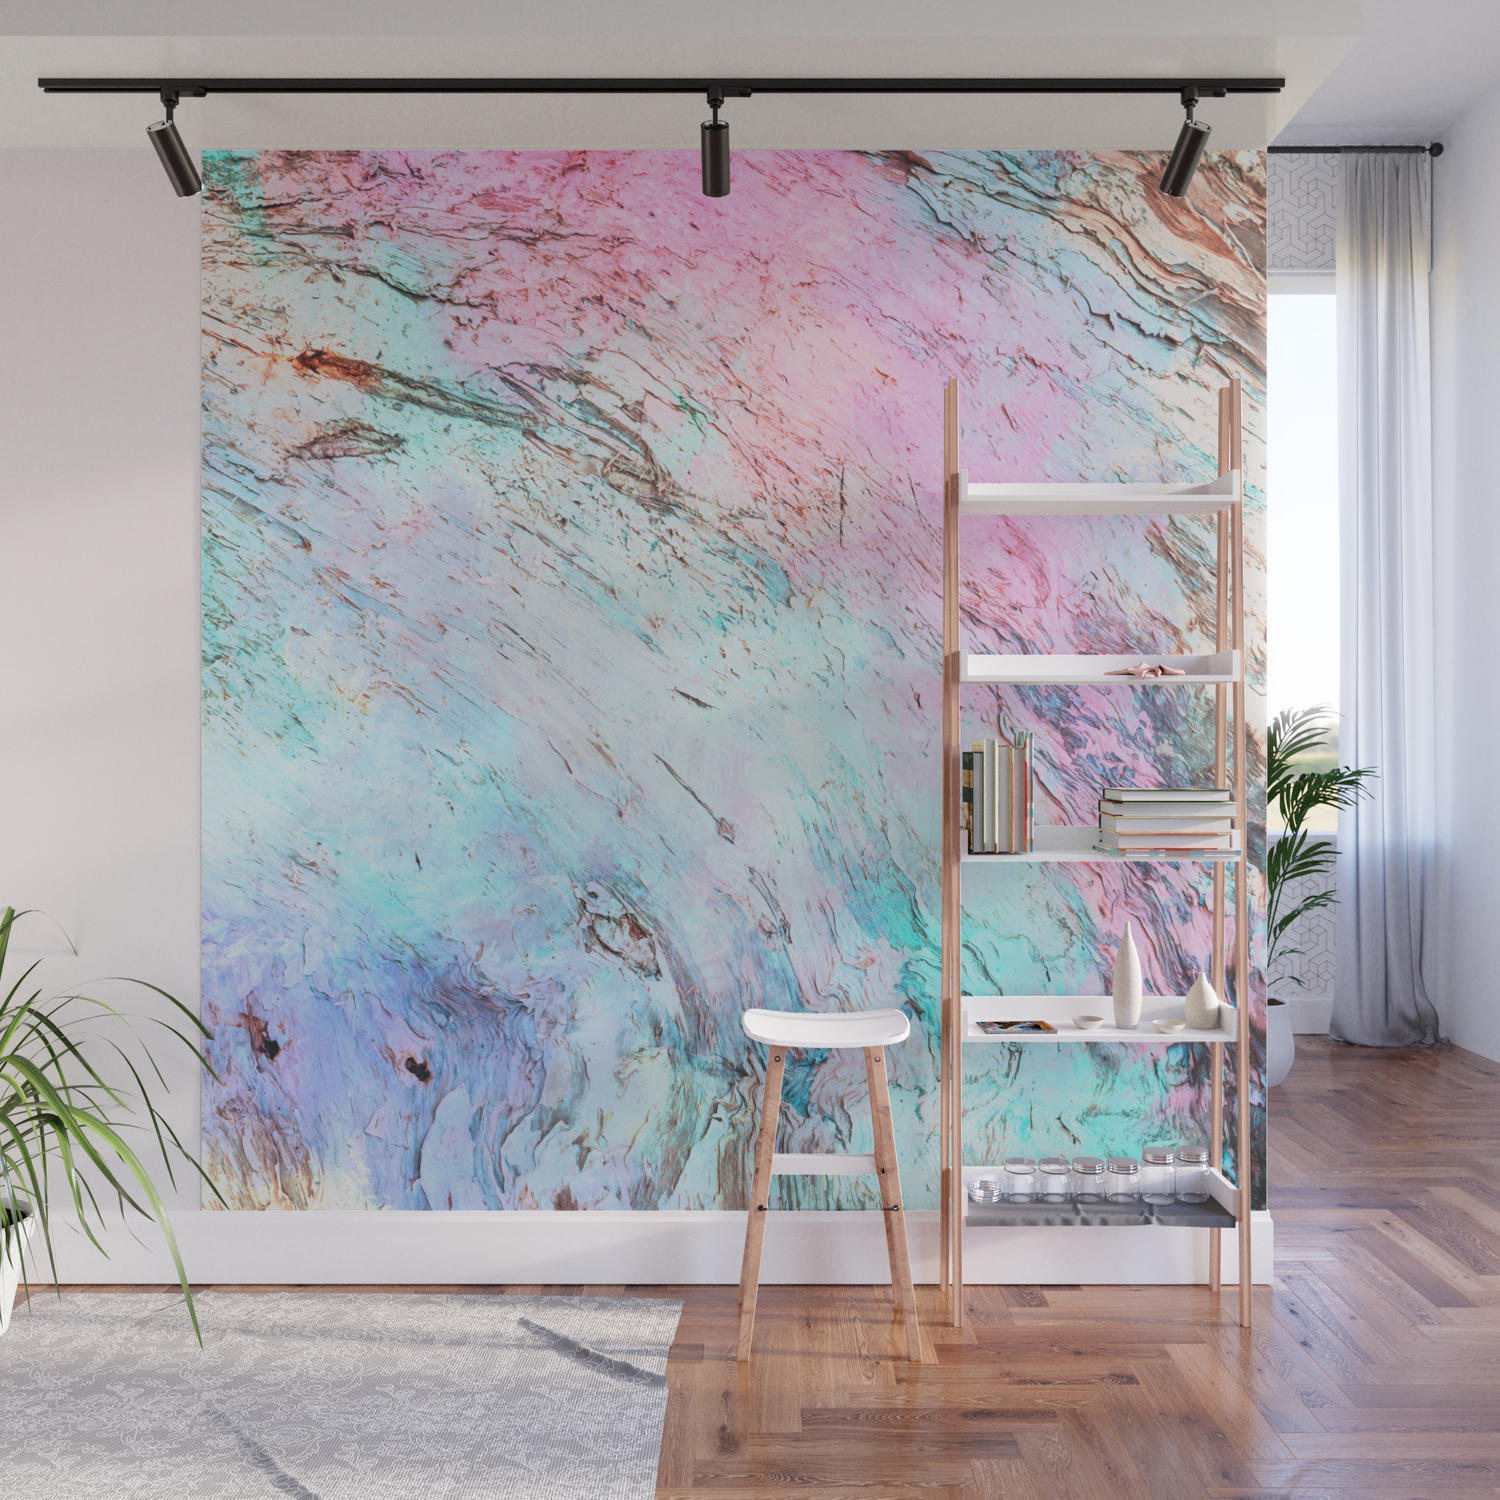 Abstract Modern Pink Teal Lavender Watercolor Marble Wall Mural